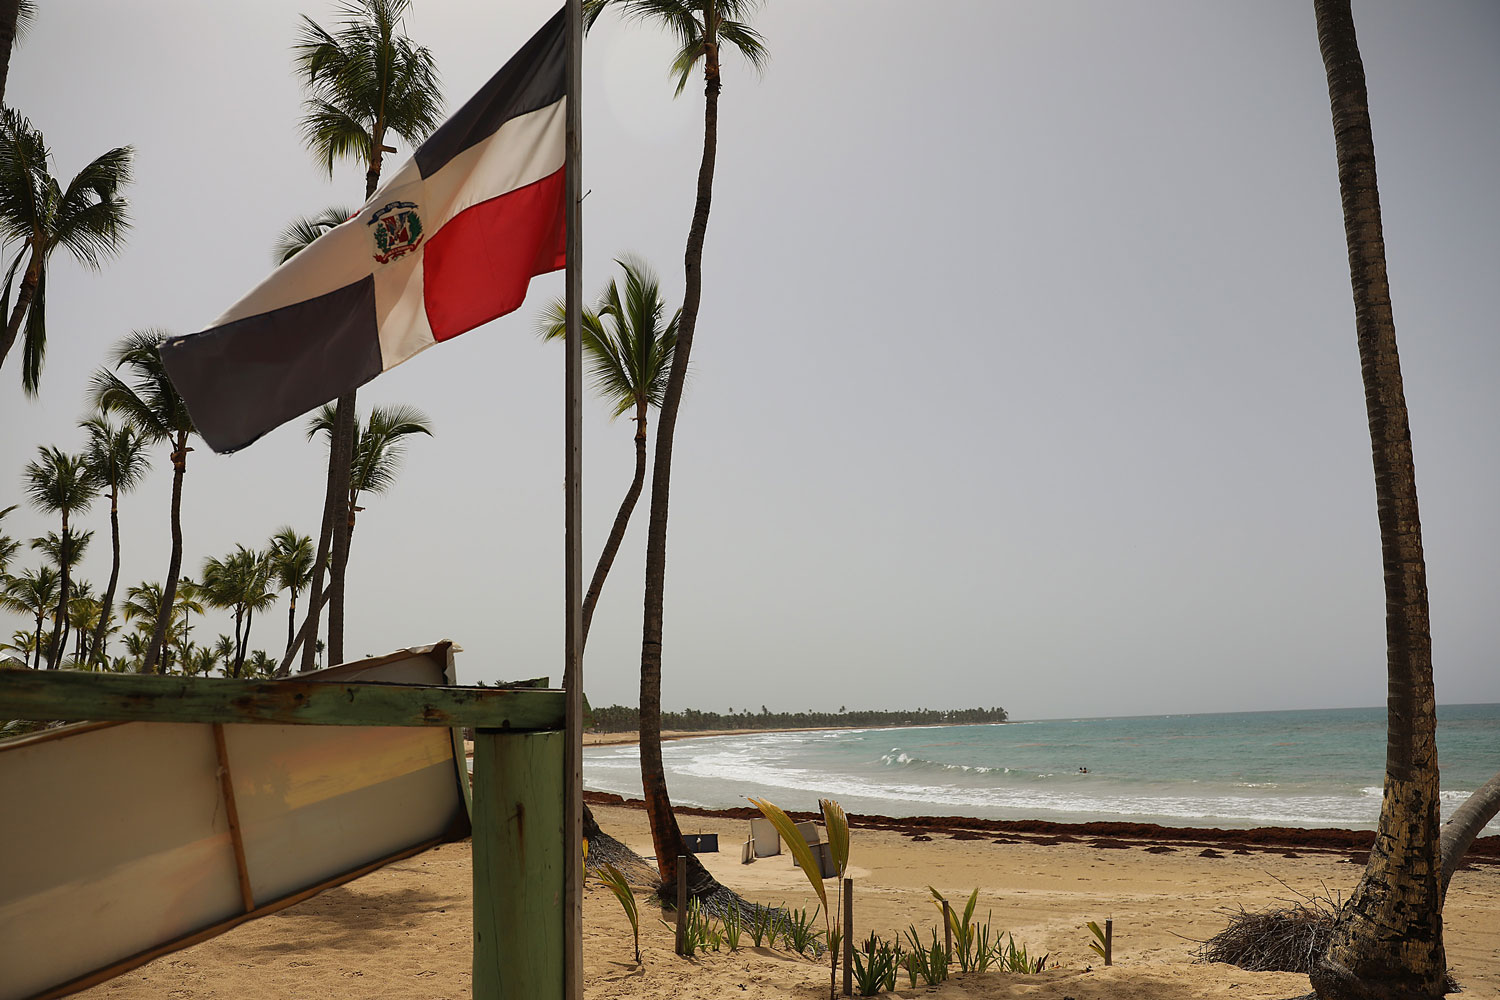 Is Counterfeit Alcohol Linked to Dominican Republic Tourist Deaths